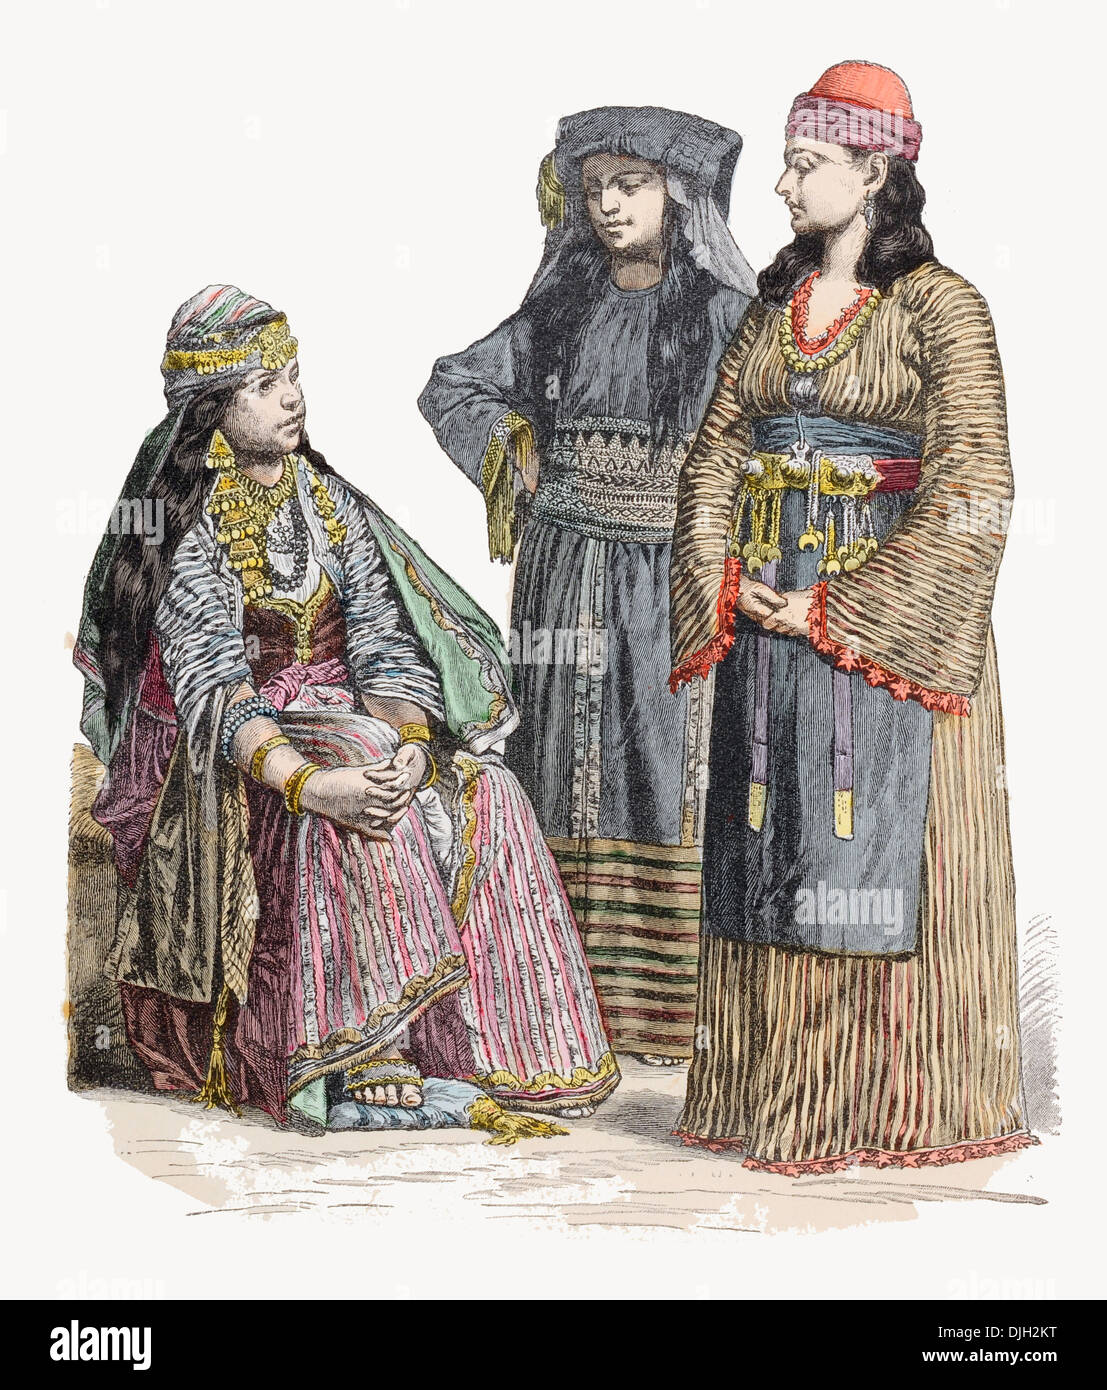 19th century XIX Syria Left to right Woman of Damascus, Muslim Lady and another Woman of Damascus - Stock Image